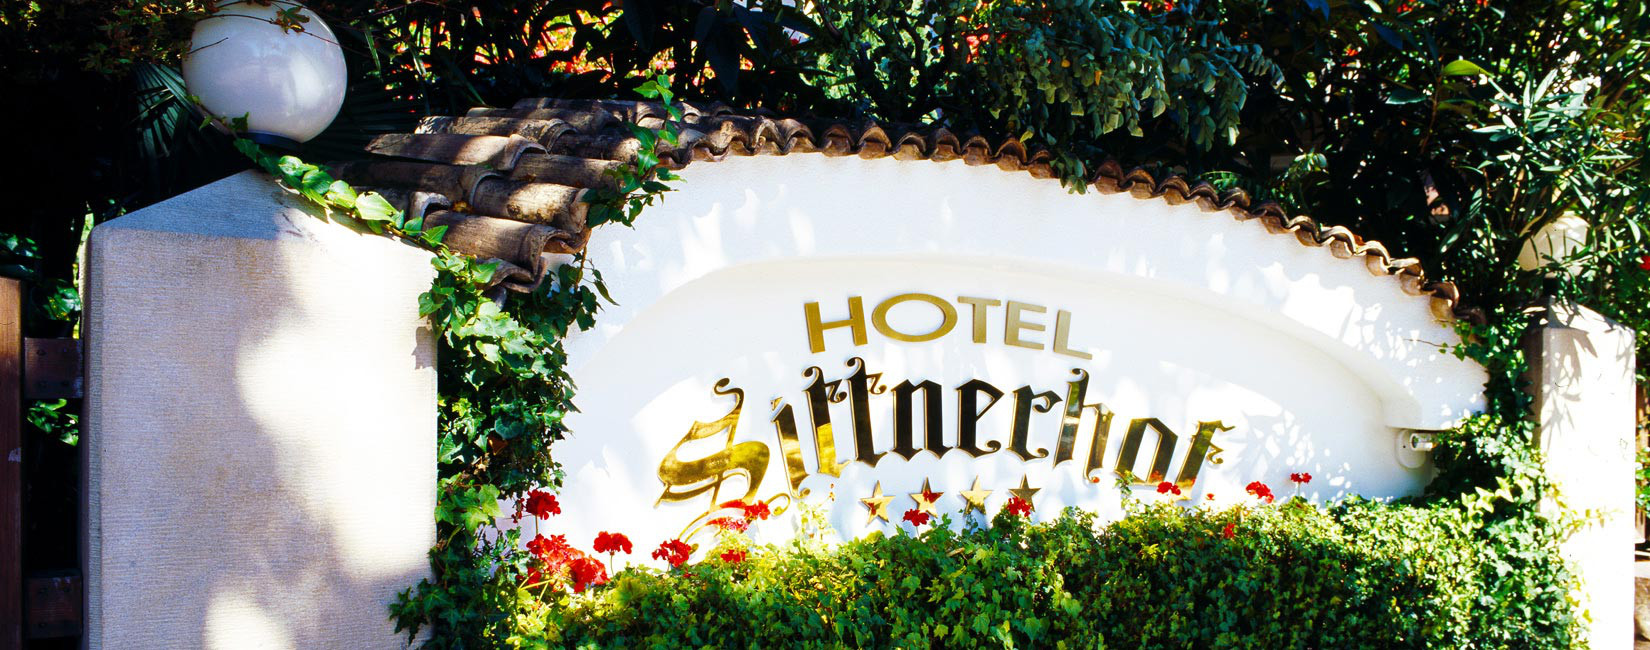 Hotel Sittnerhof – Enchanting holidays in Merano